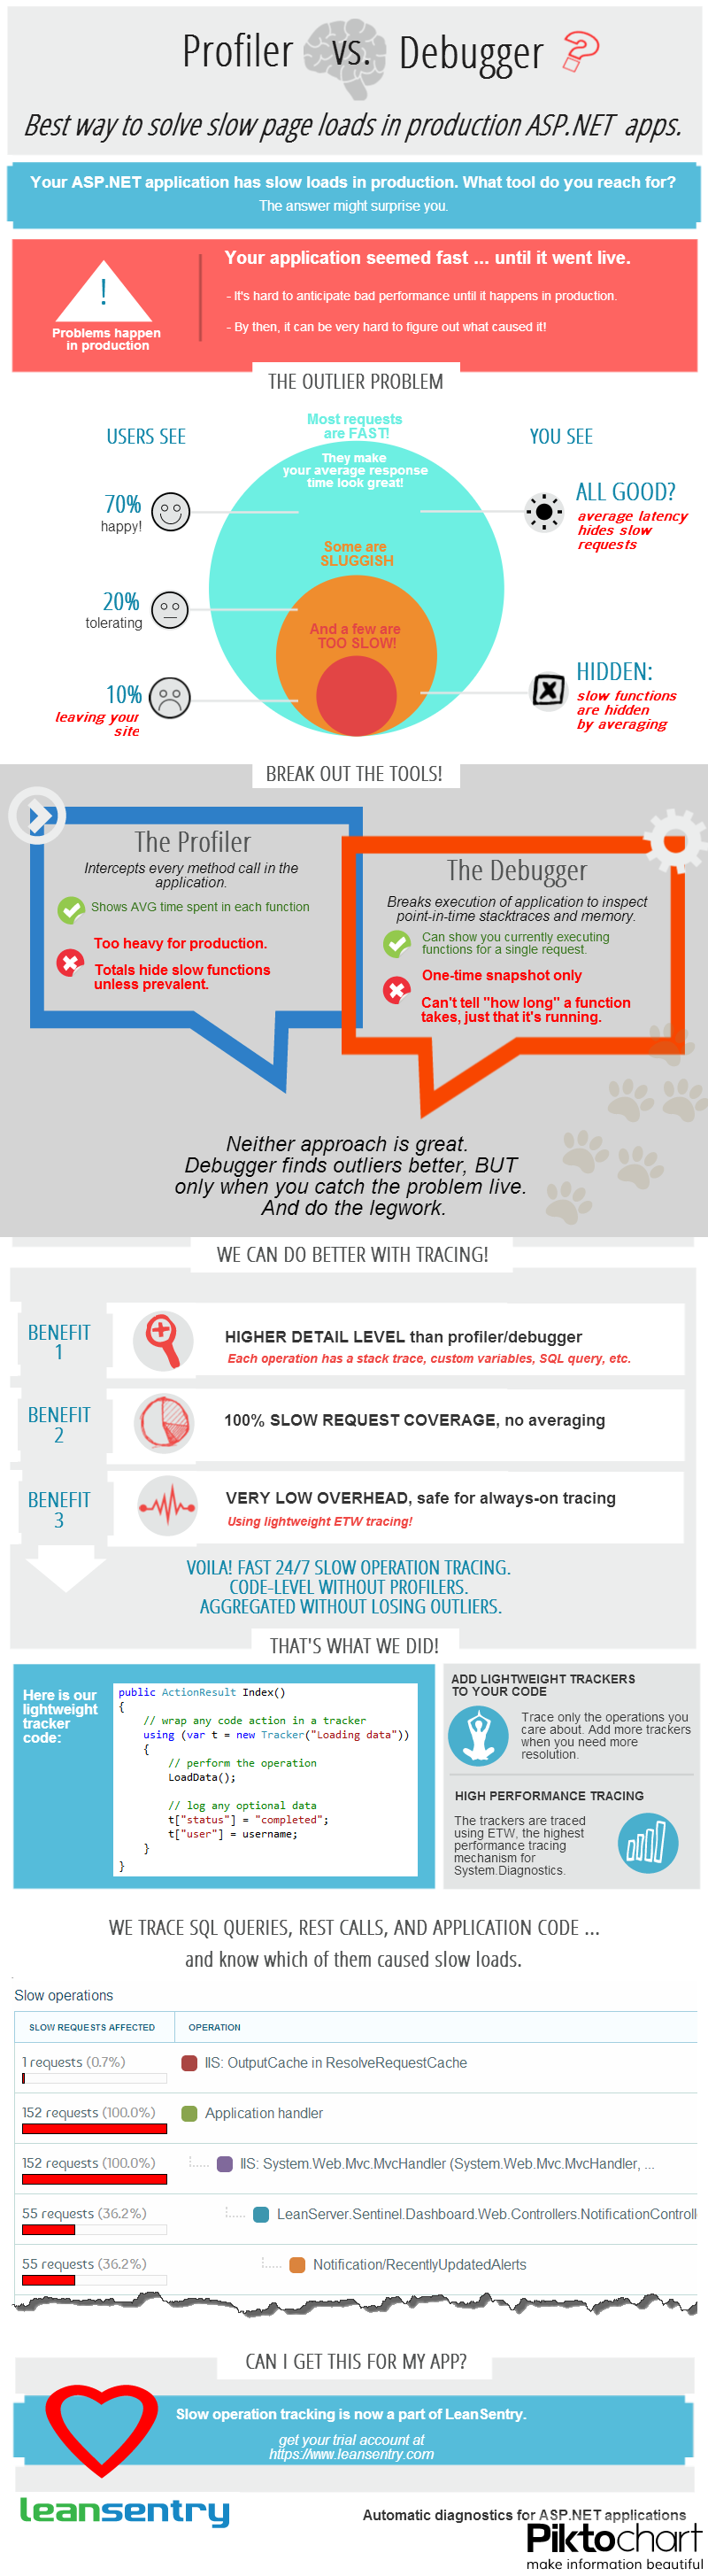 Infographic_Profiler_vs_Debugger_ASPNET_slow_page_loads